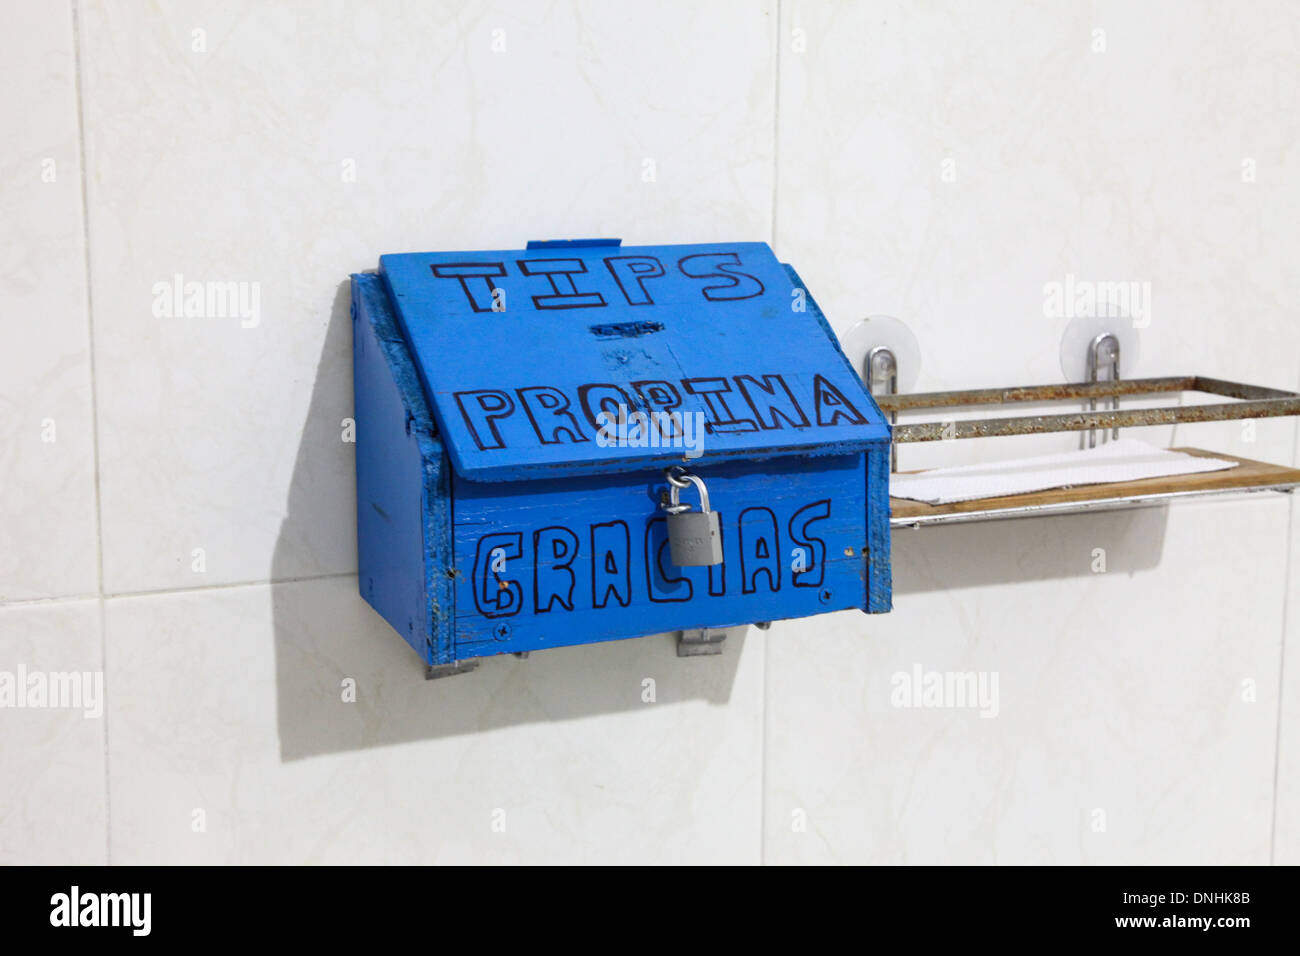 A tip box on a tiled wall with propina and gracias written on it and a pad lock Mexico - Stock Image